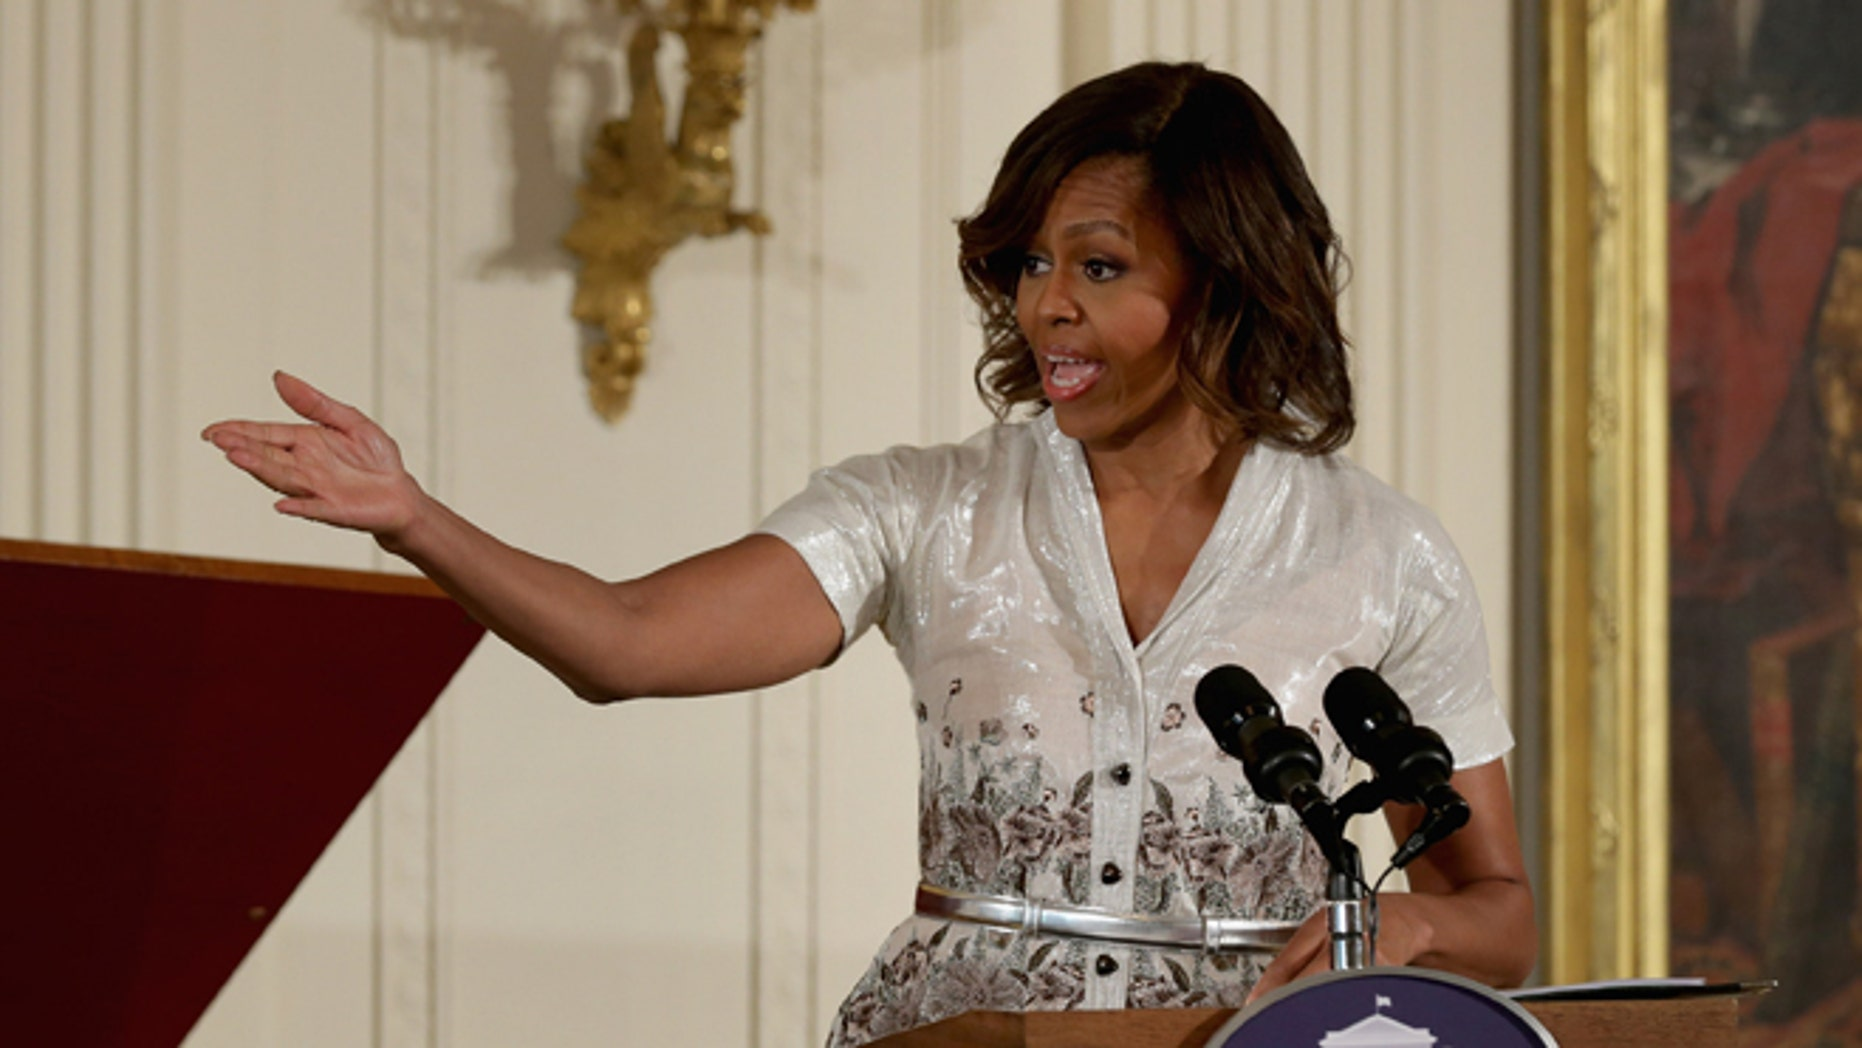 WASHINGTON, DC - MAY 12:  First lady Michelle Obama delivers remarks during the annual Mother's Day tea to honor military mothers at the White House May 12, 2014 in Washington, DC. Part of the Joining Forces initiative, Obama and Dr. Jill Biden also helped military kids create Mother's Day cards and homemade gifts, which the children presented to their mothers and grandmothers.  (Photo by Chip Somodevilla/Getty Images)